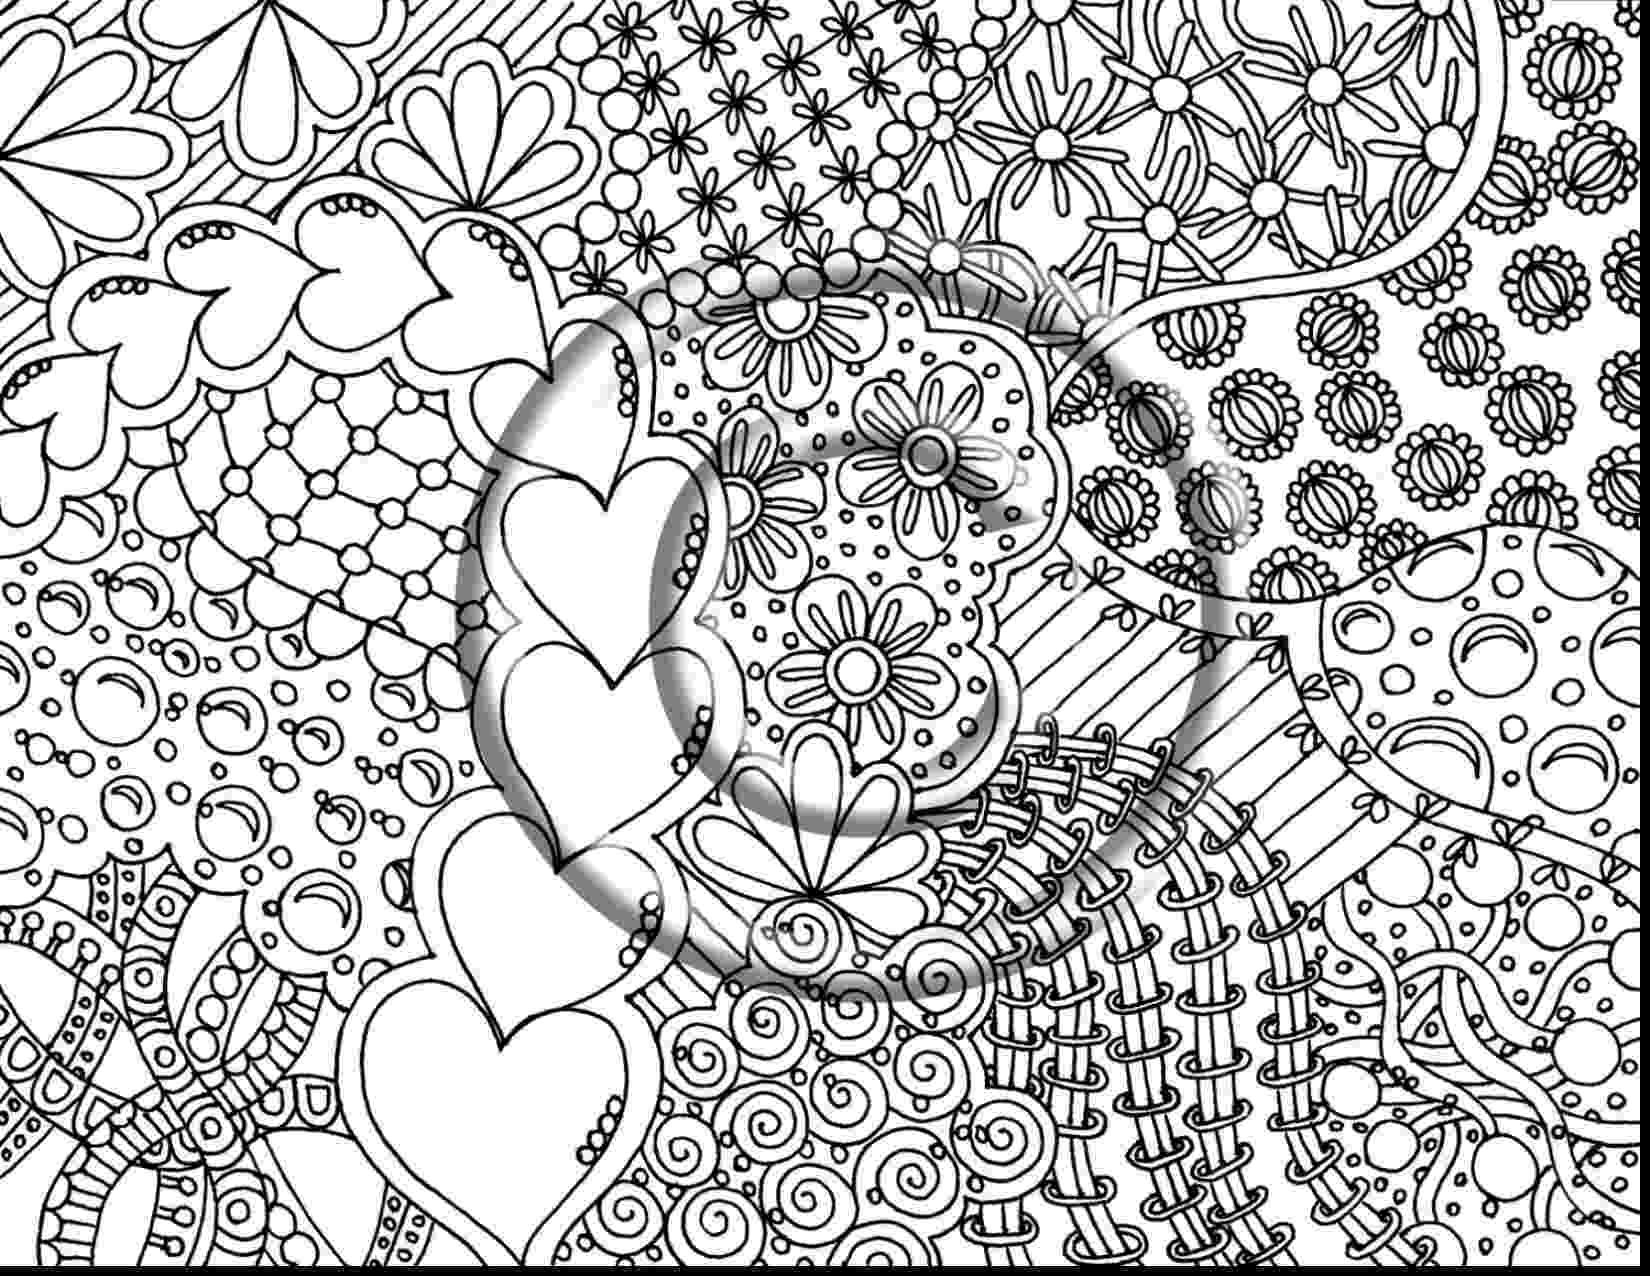 trippy coloring sheets trippy space rocket and planets coloring page free coloring sheets trippy